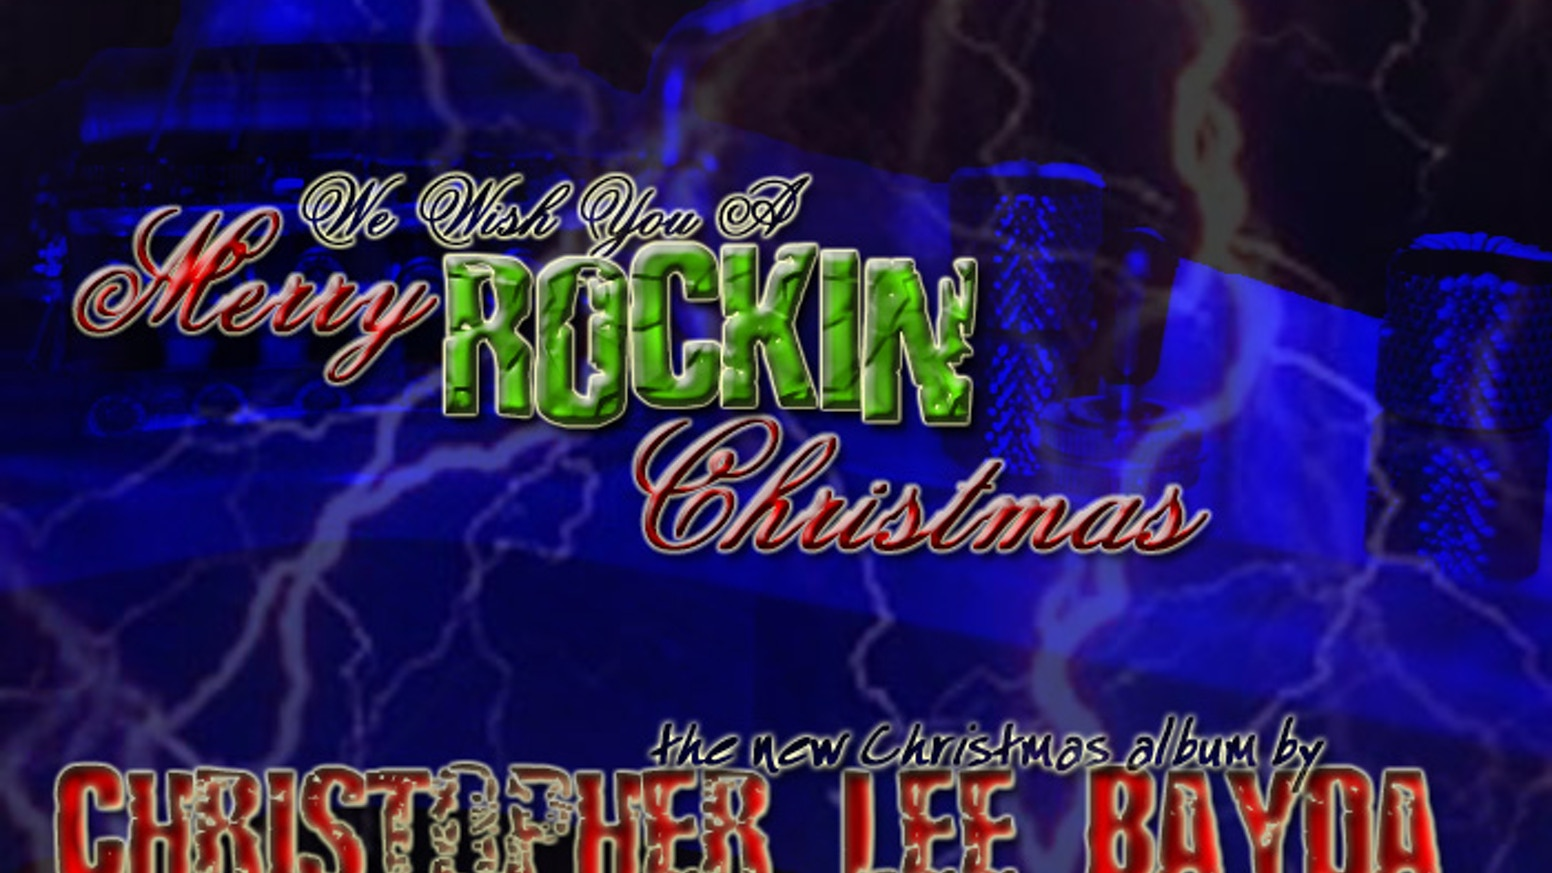 Chance Christmas Album.We Wish You A Merry Rockin Christmas By Christopher Lee